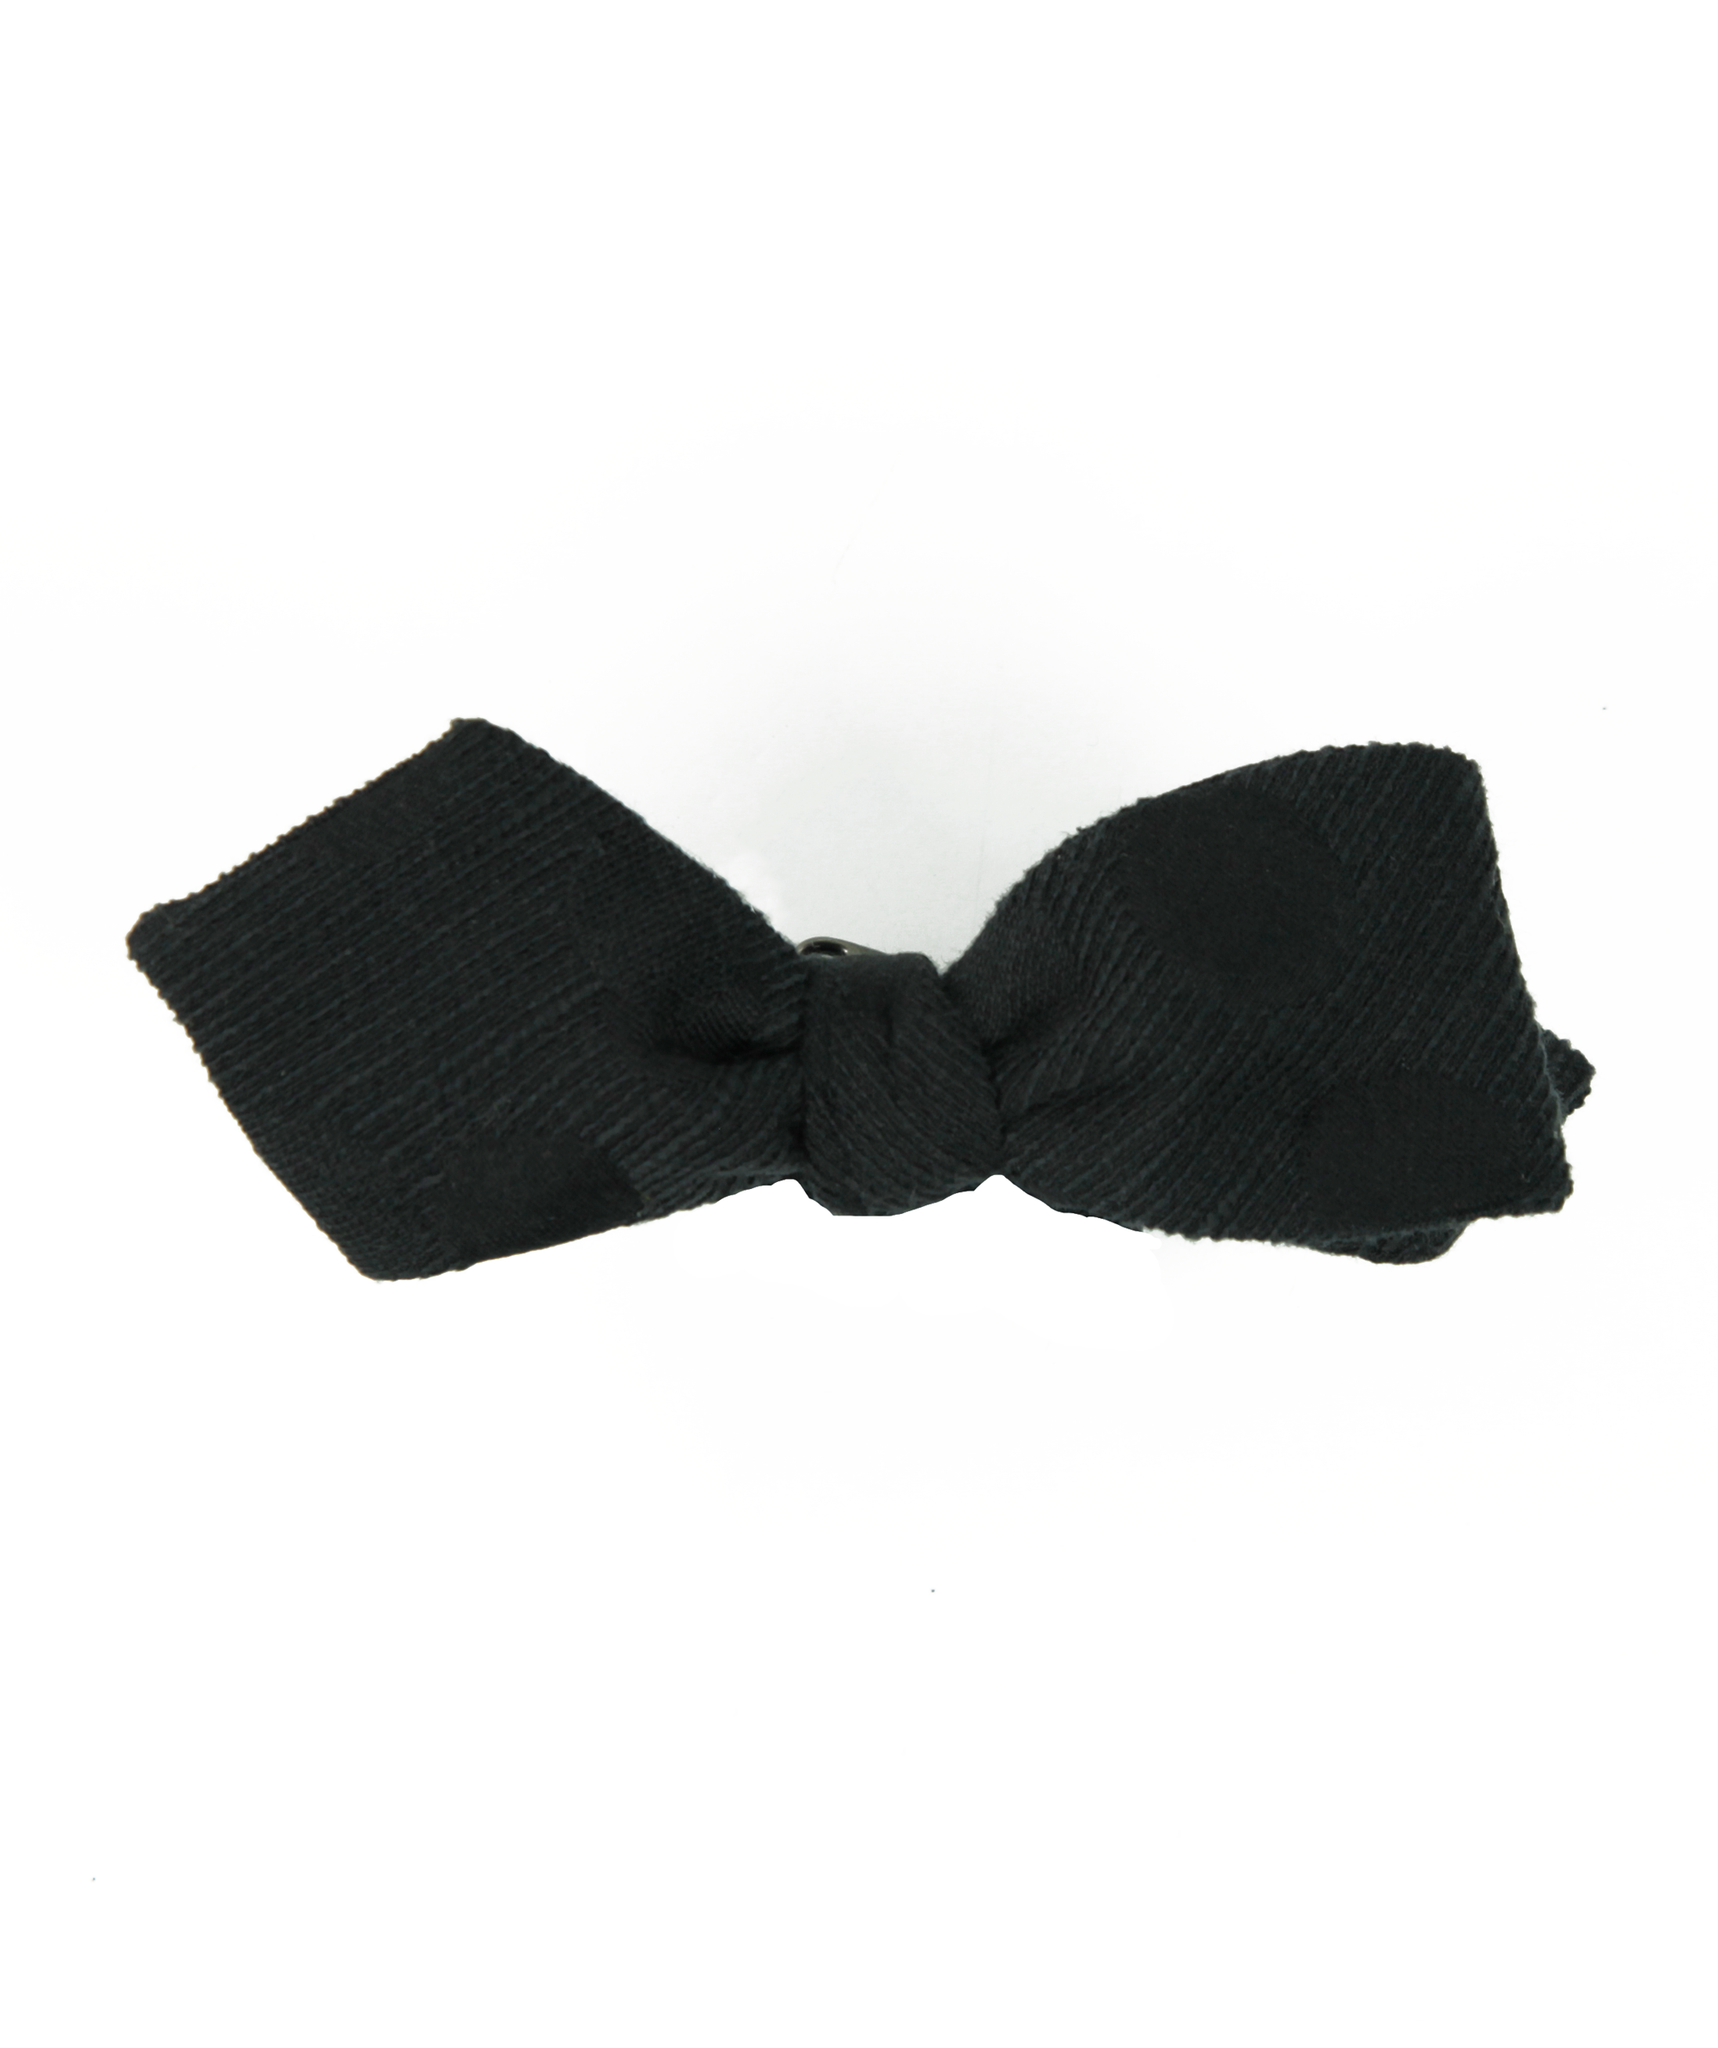 The Double Double Bow Tie